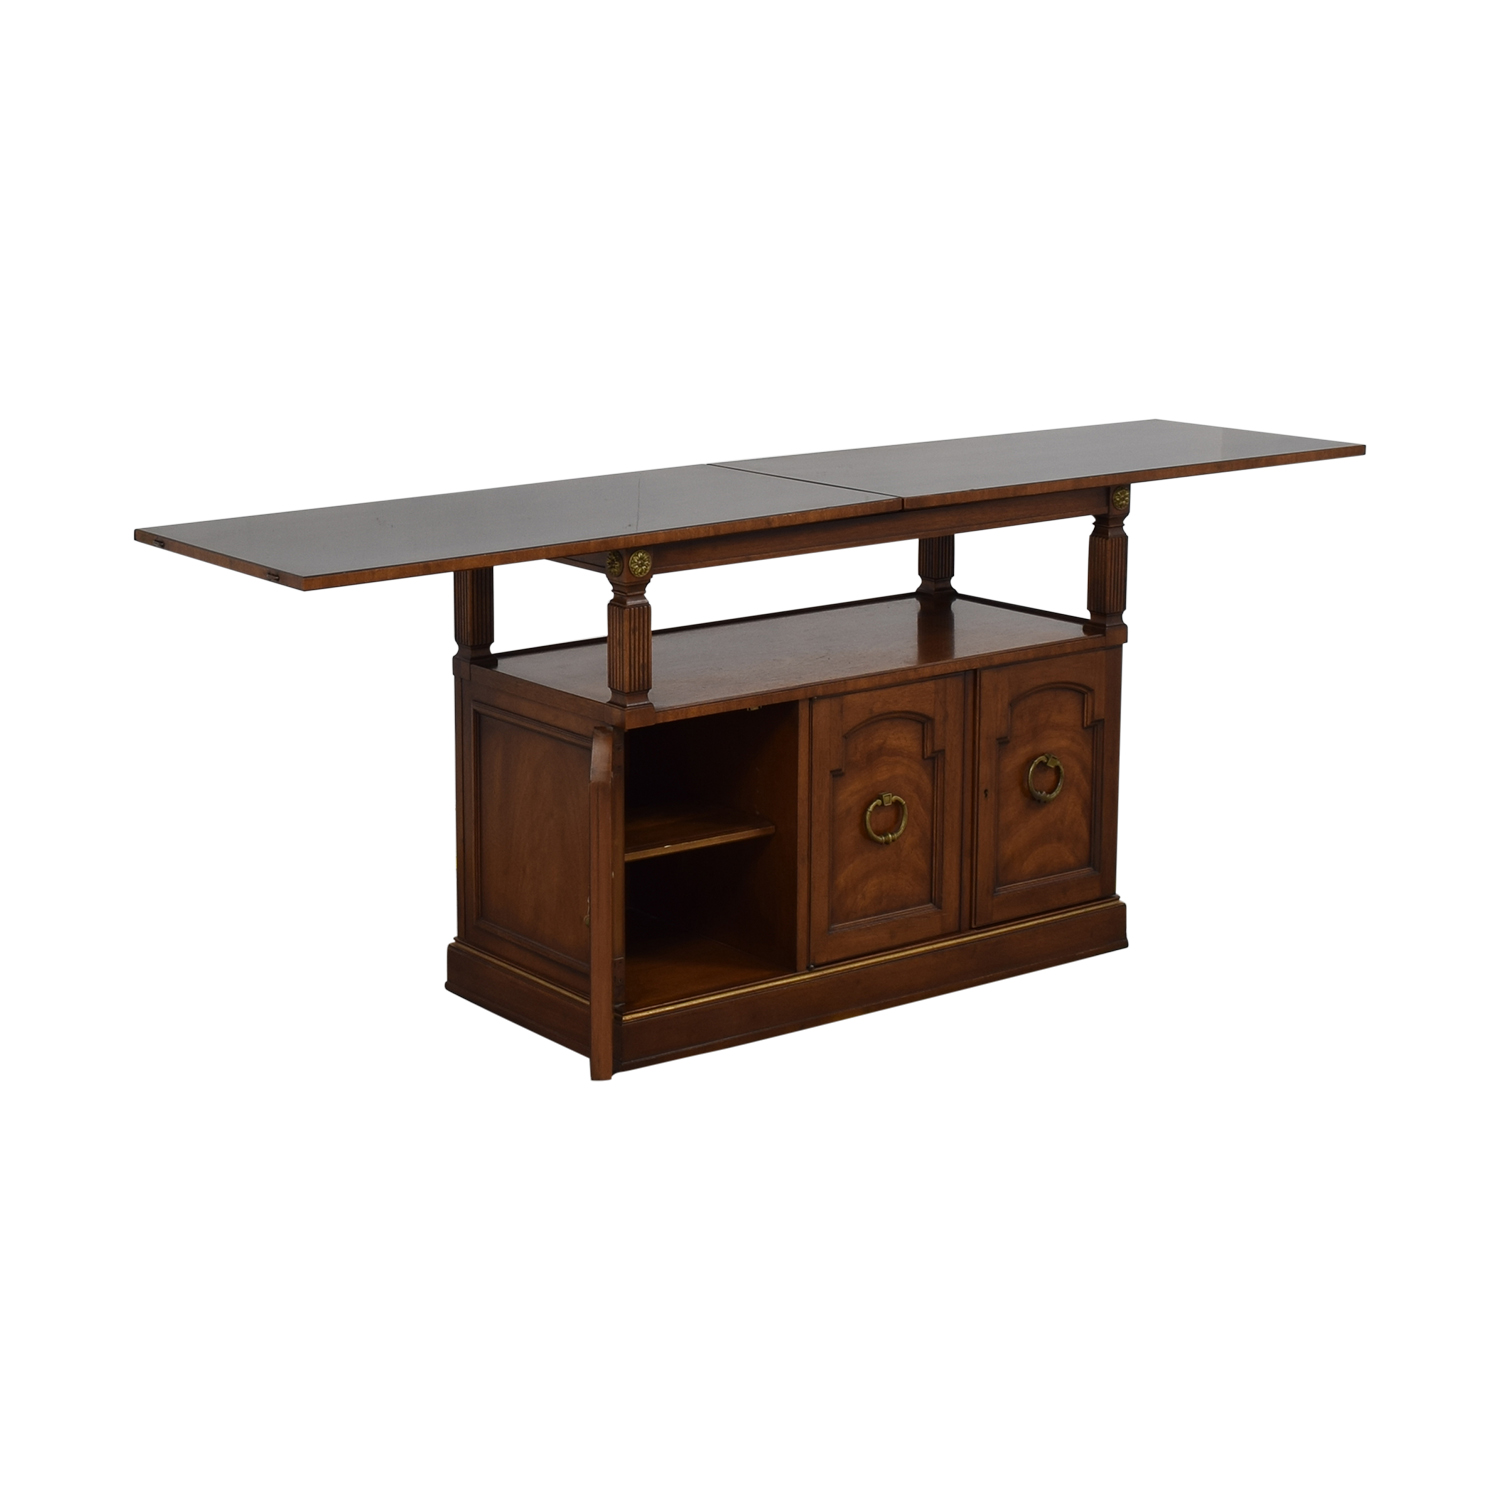 Drexel Heritage Traditional Wood Buffet Table / Cabinets & Sideboards